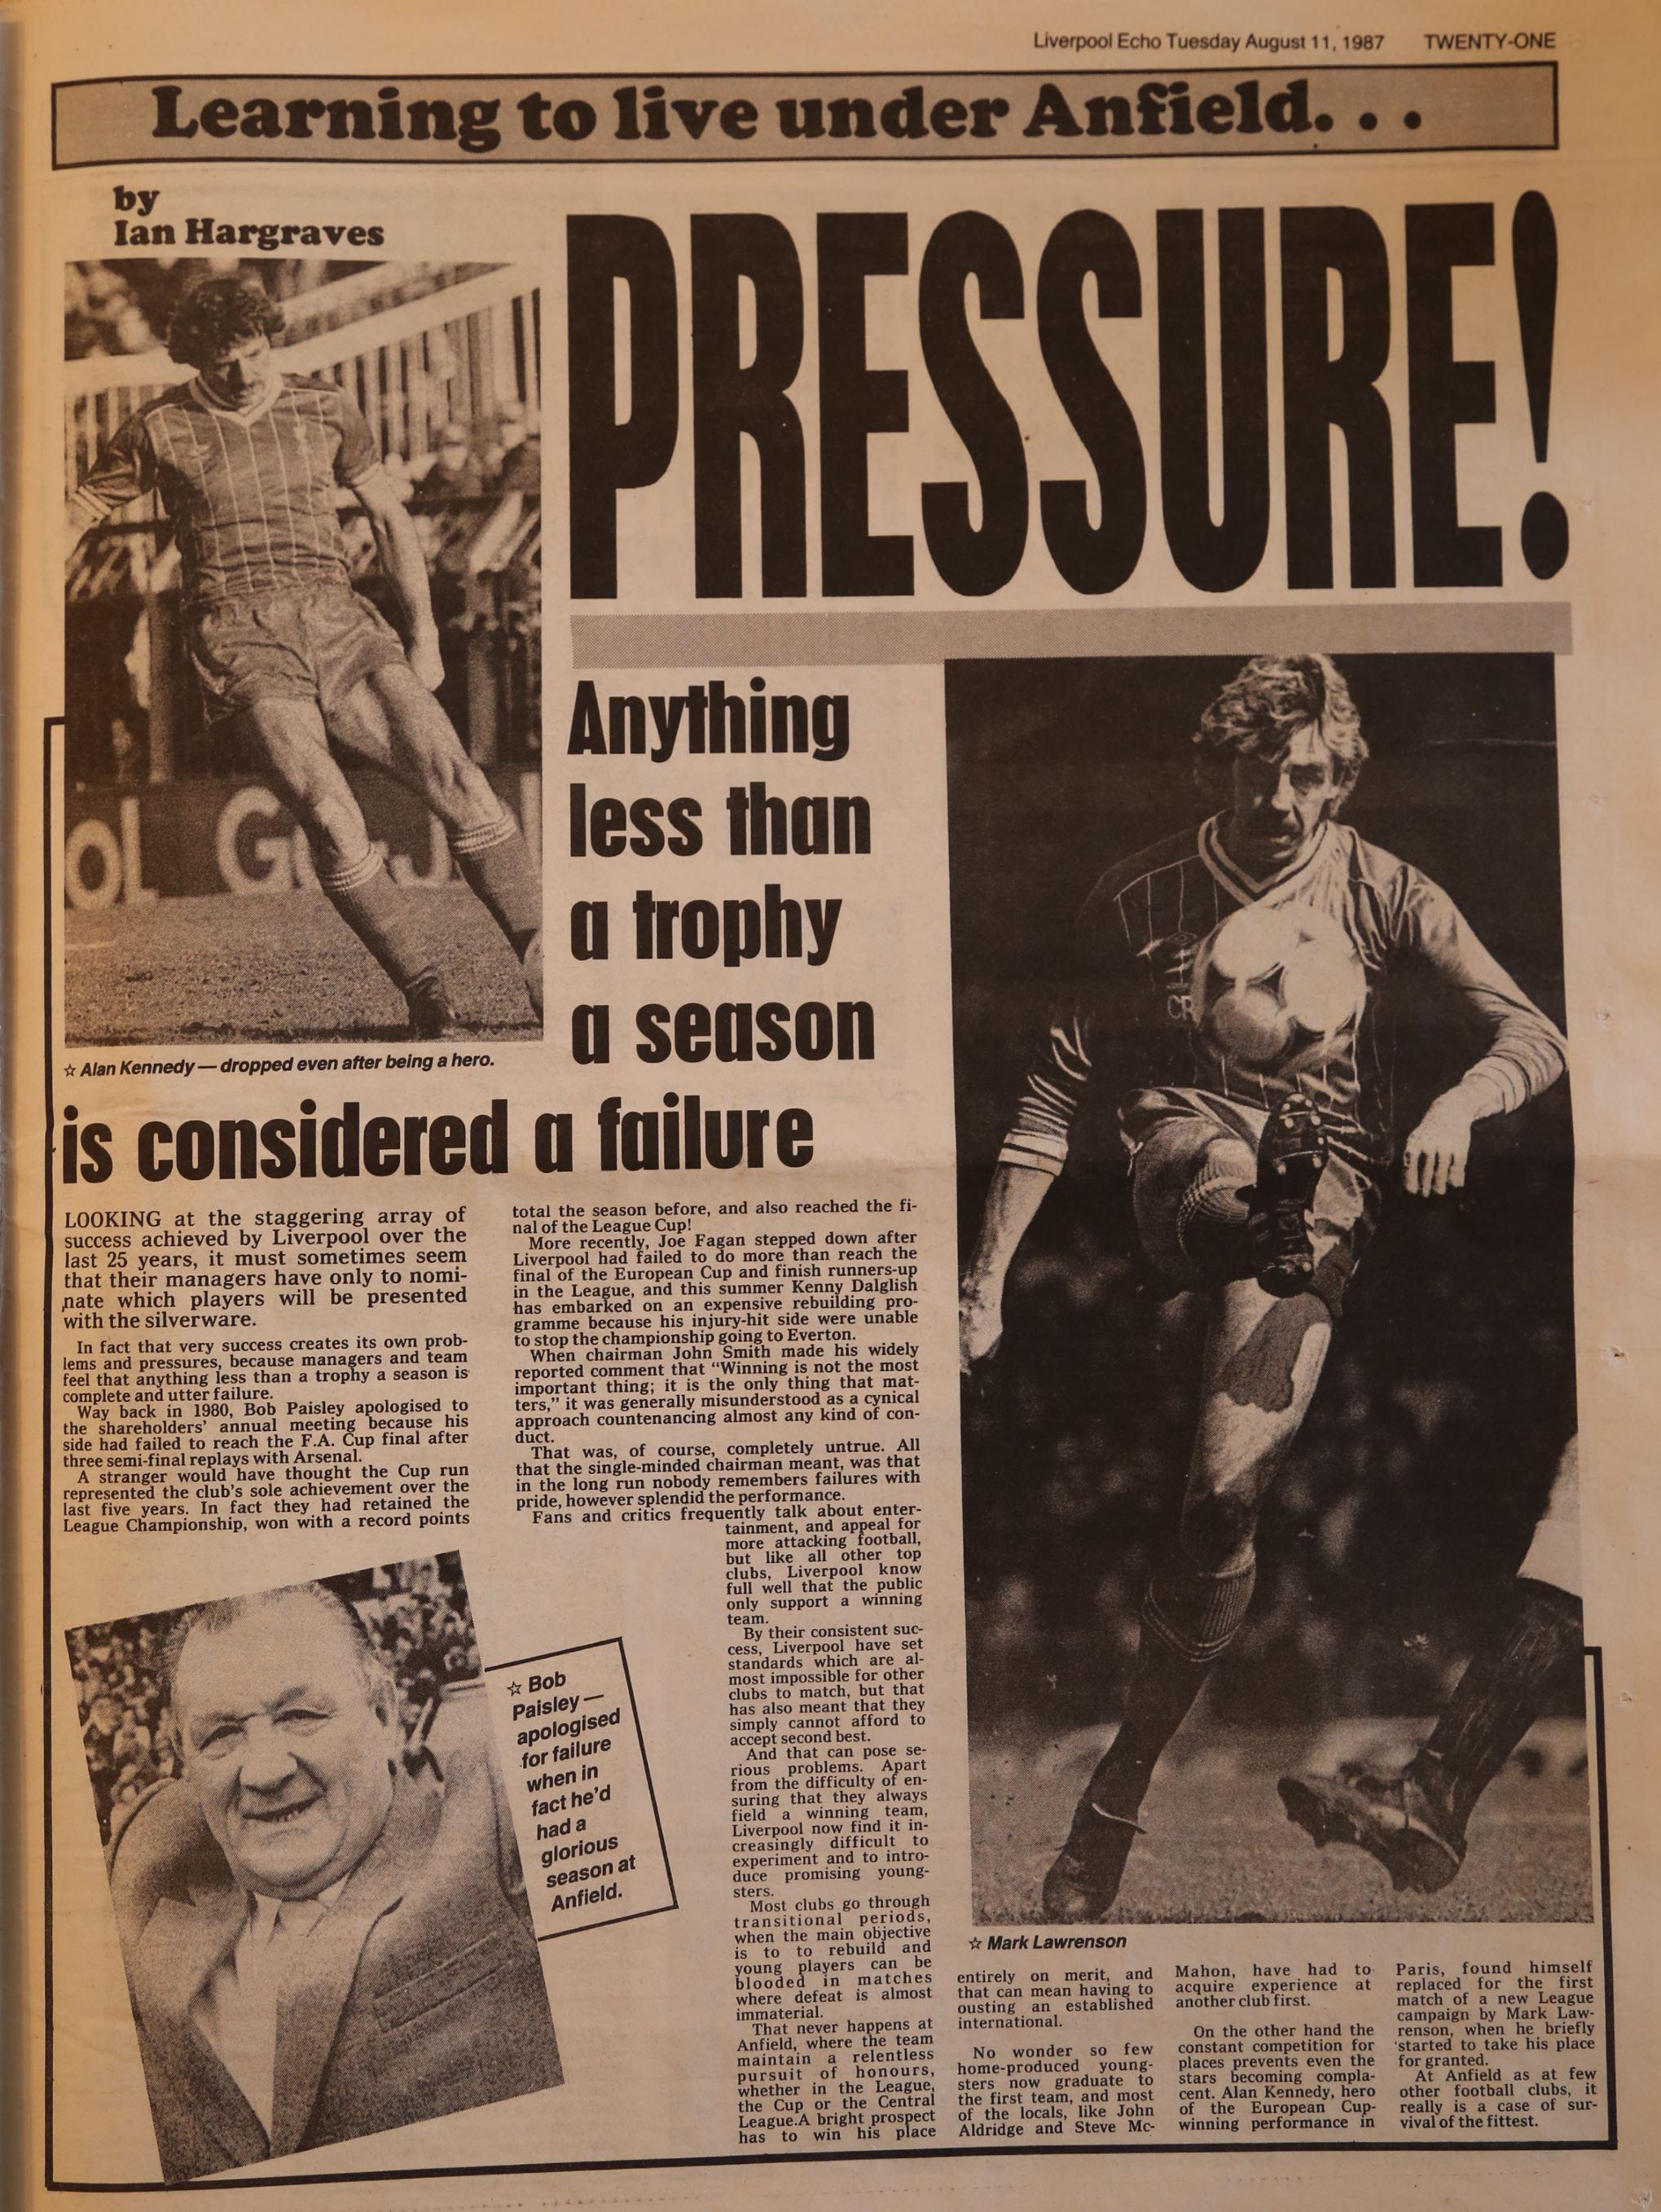 Learning to live with the Anfield pressure - 11 August 1987